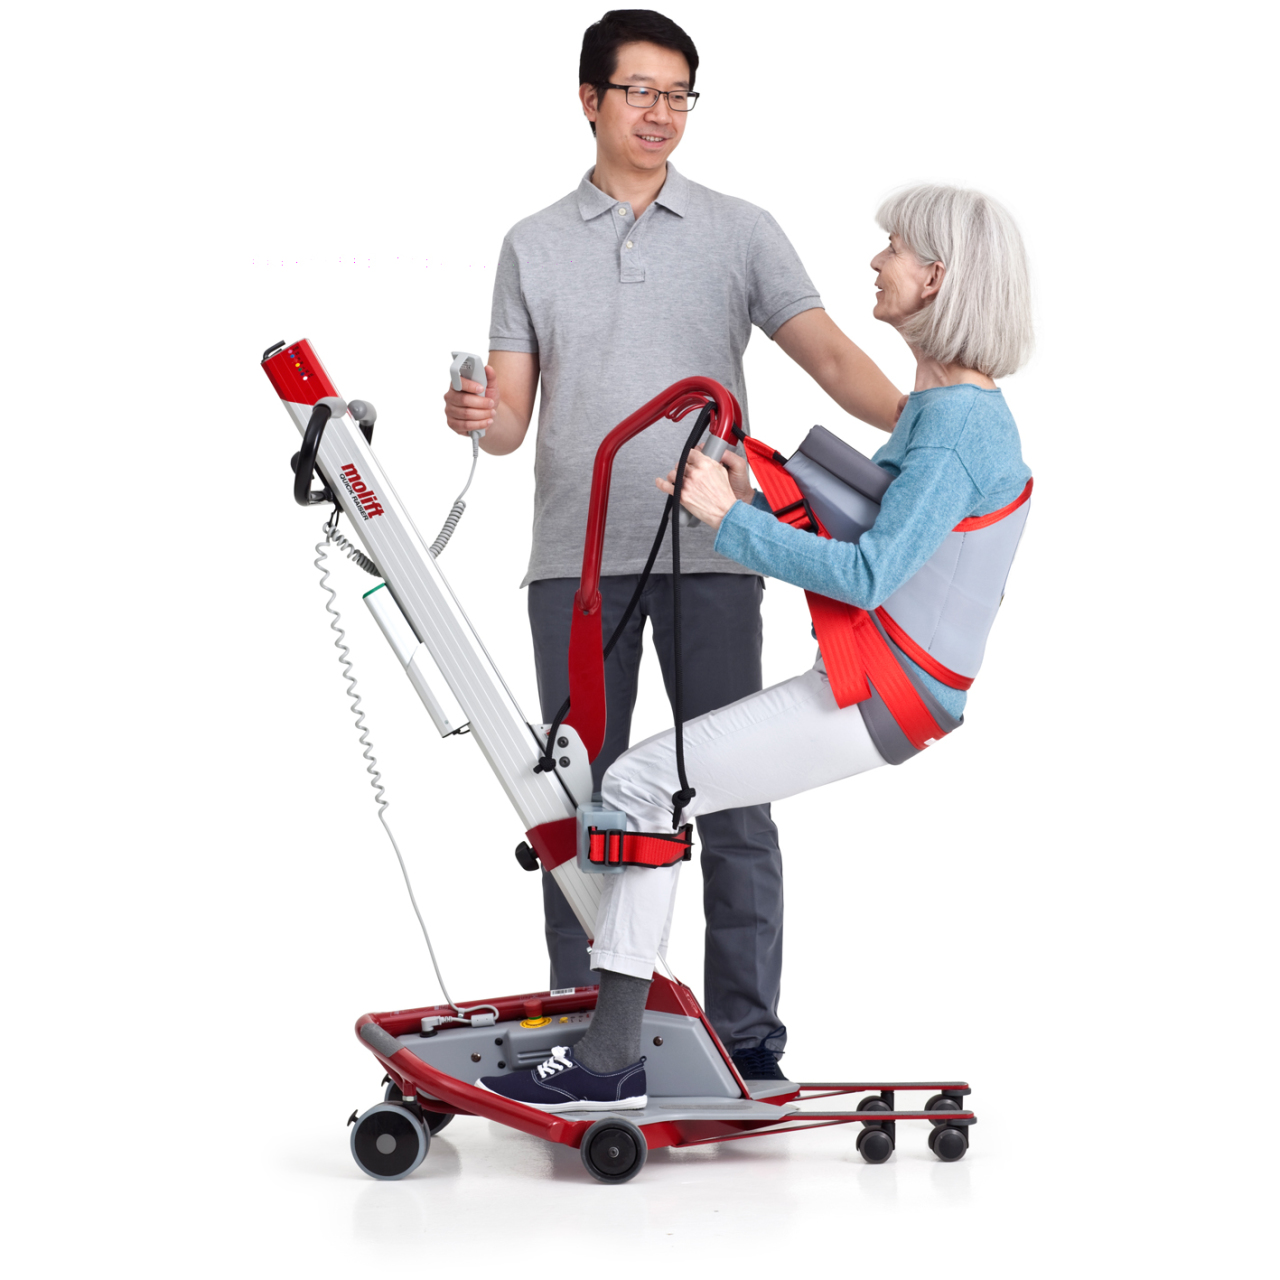 <b>Compact and easy to manoeuvre</b> Molift Quick Raiser 1 has a low weight and is stable and easy to manoeuvre.